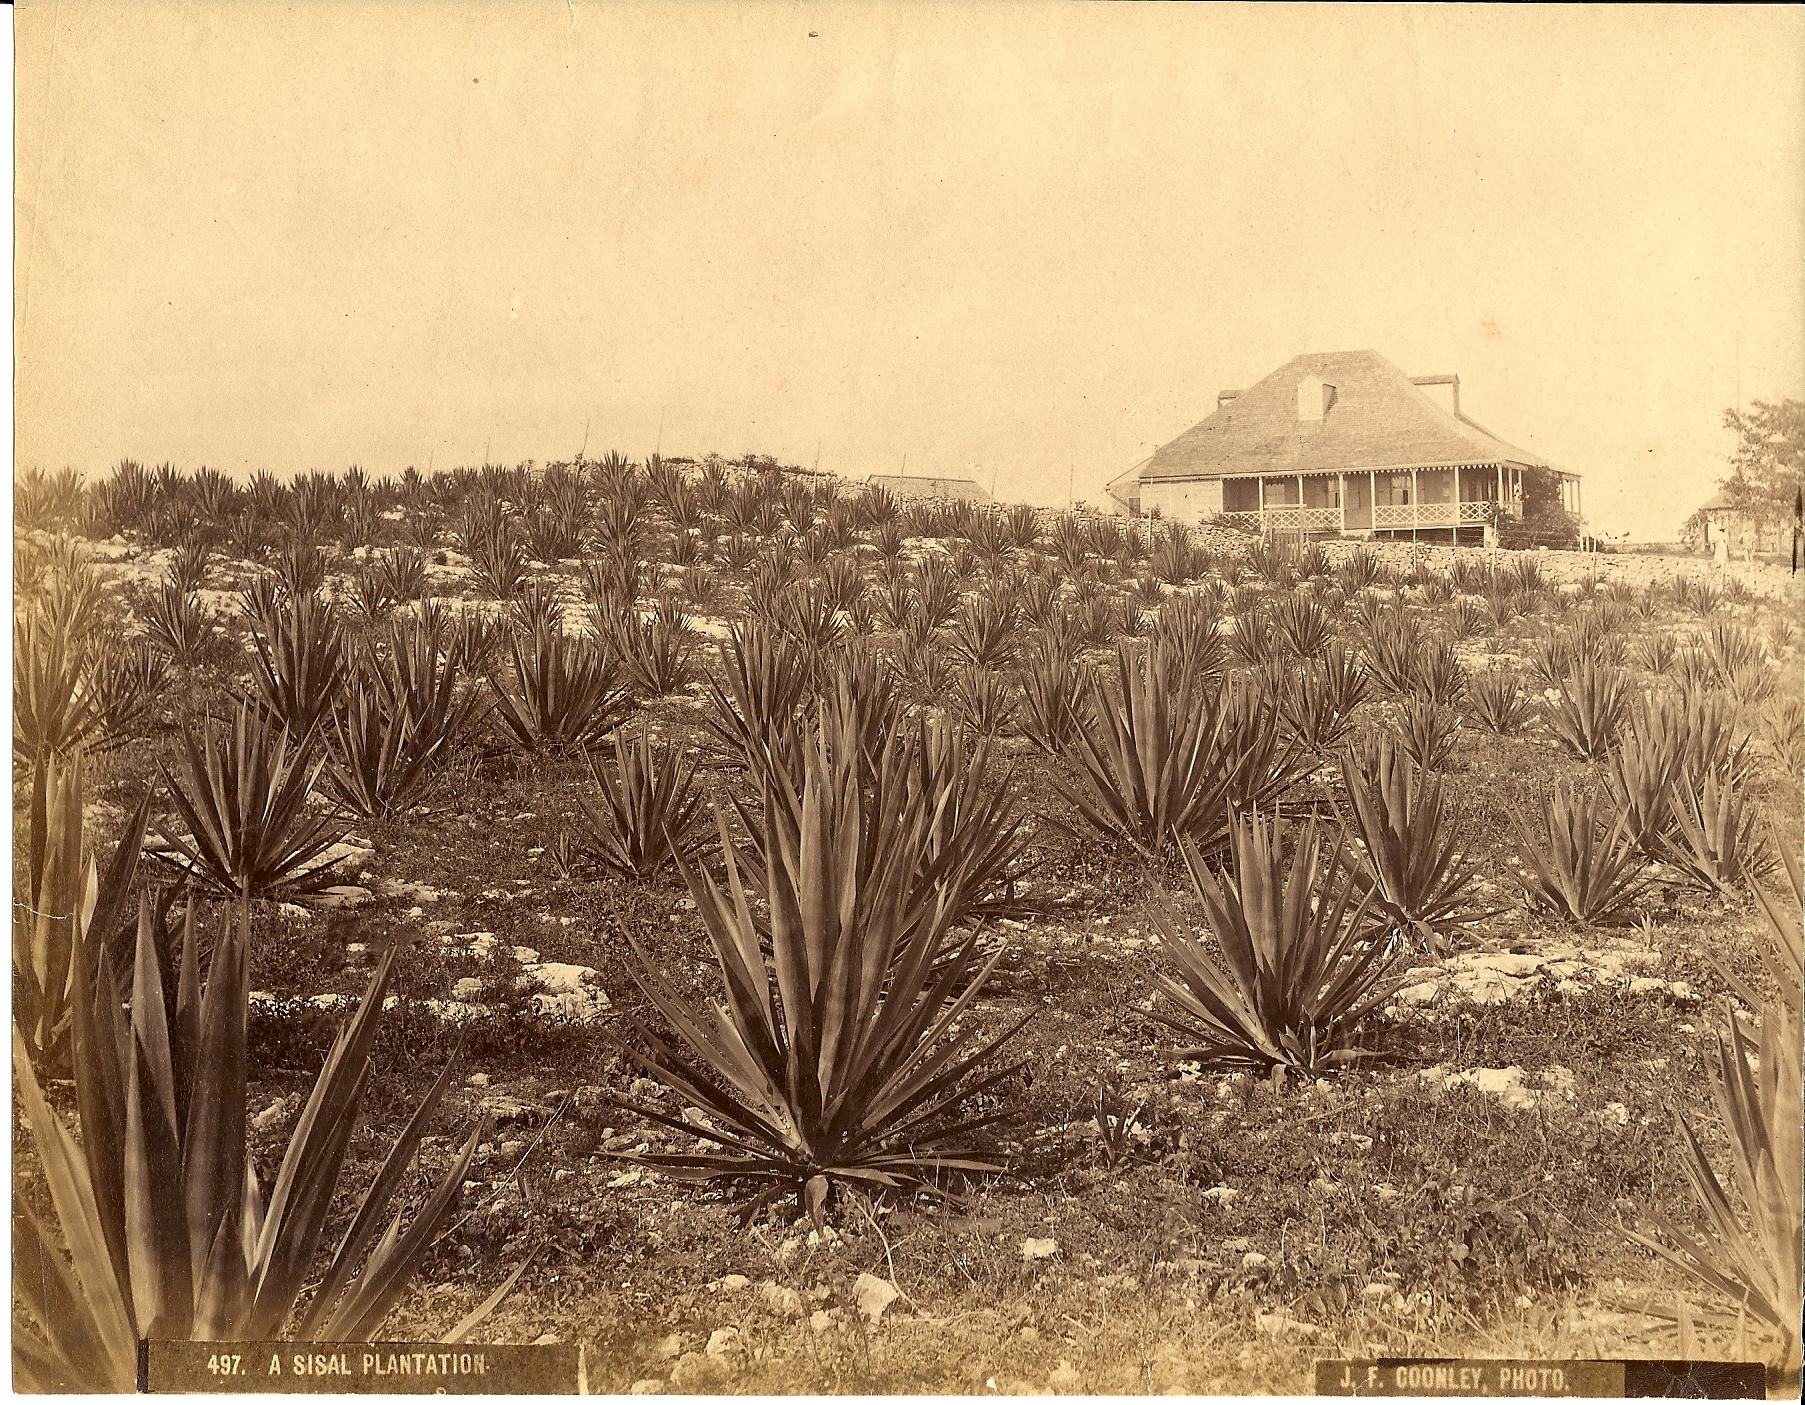 """""""A Sisal Plantation"""" (ca. 1857-1904), Jacob Frank Coonley, albumen print, 7 x 8. Part of the National Collection, originally owned by R. Brent Malone."""